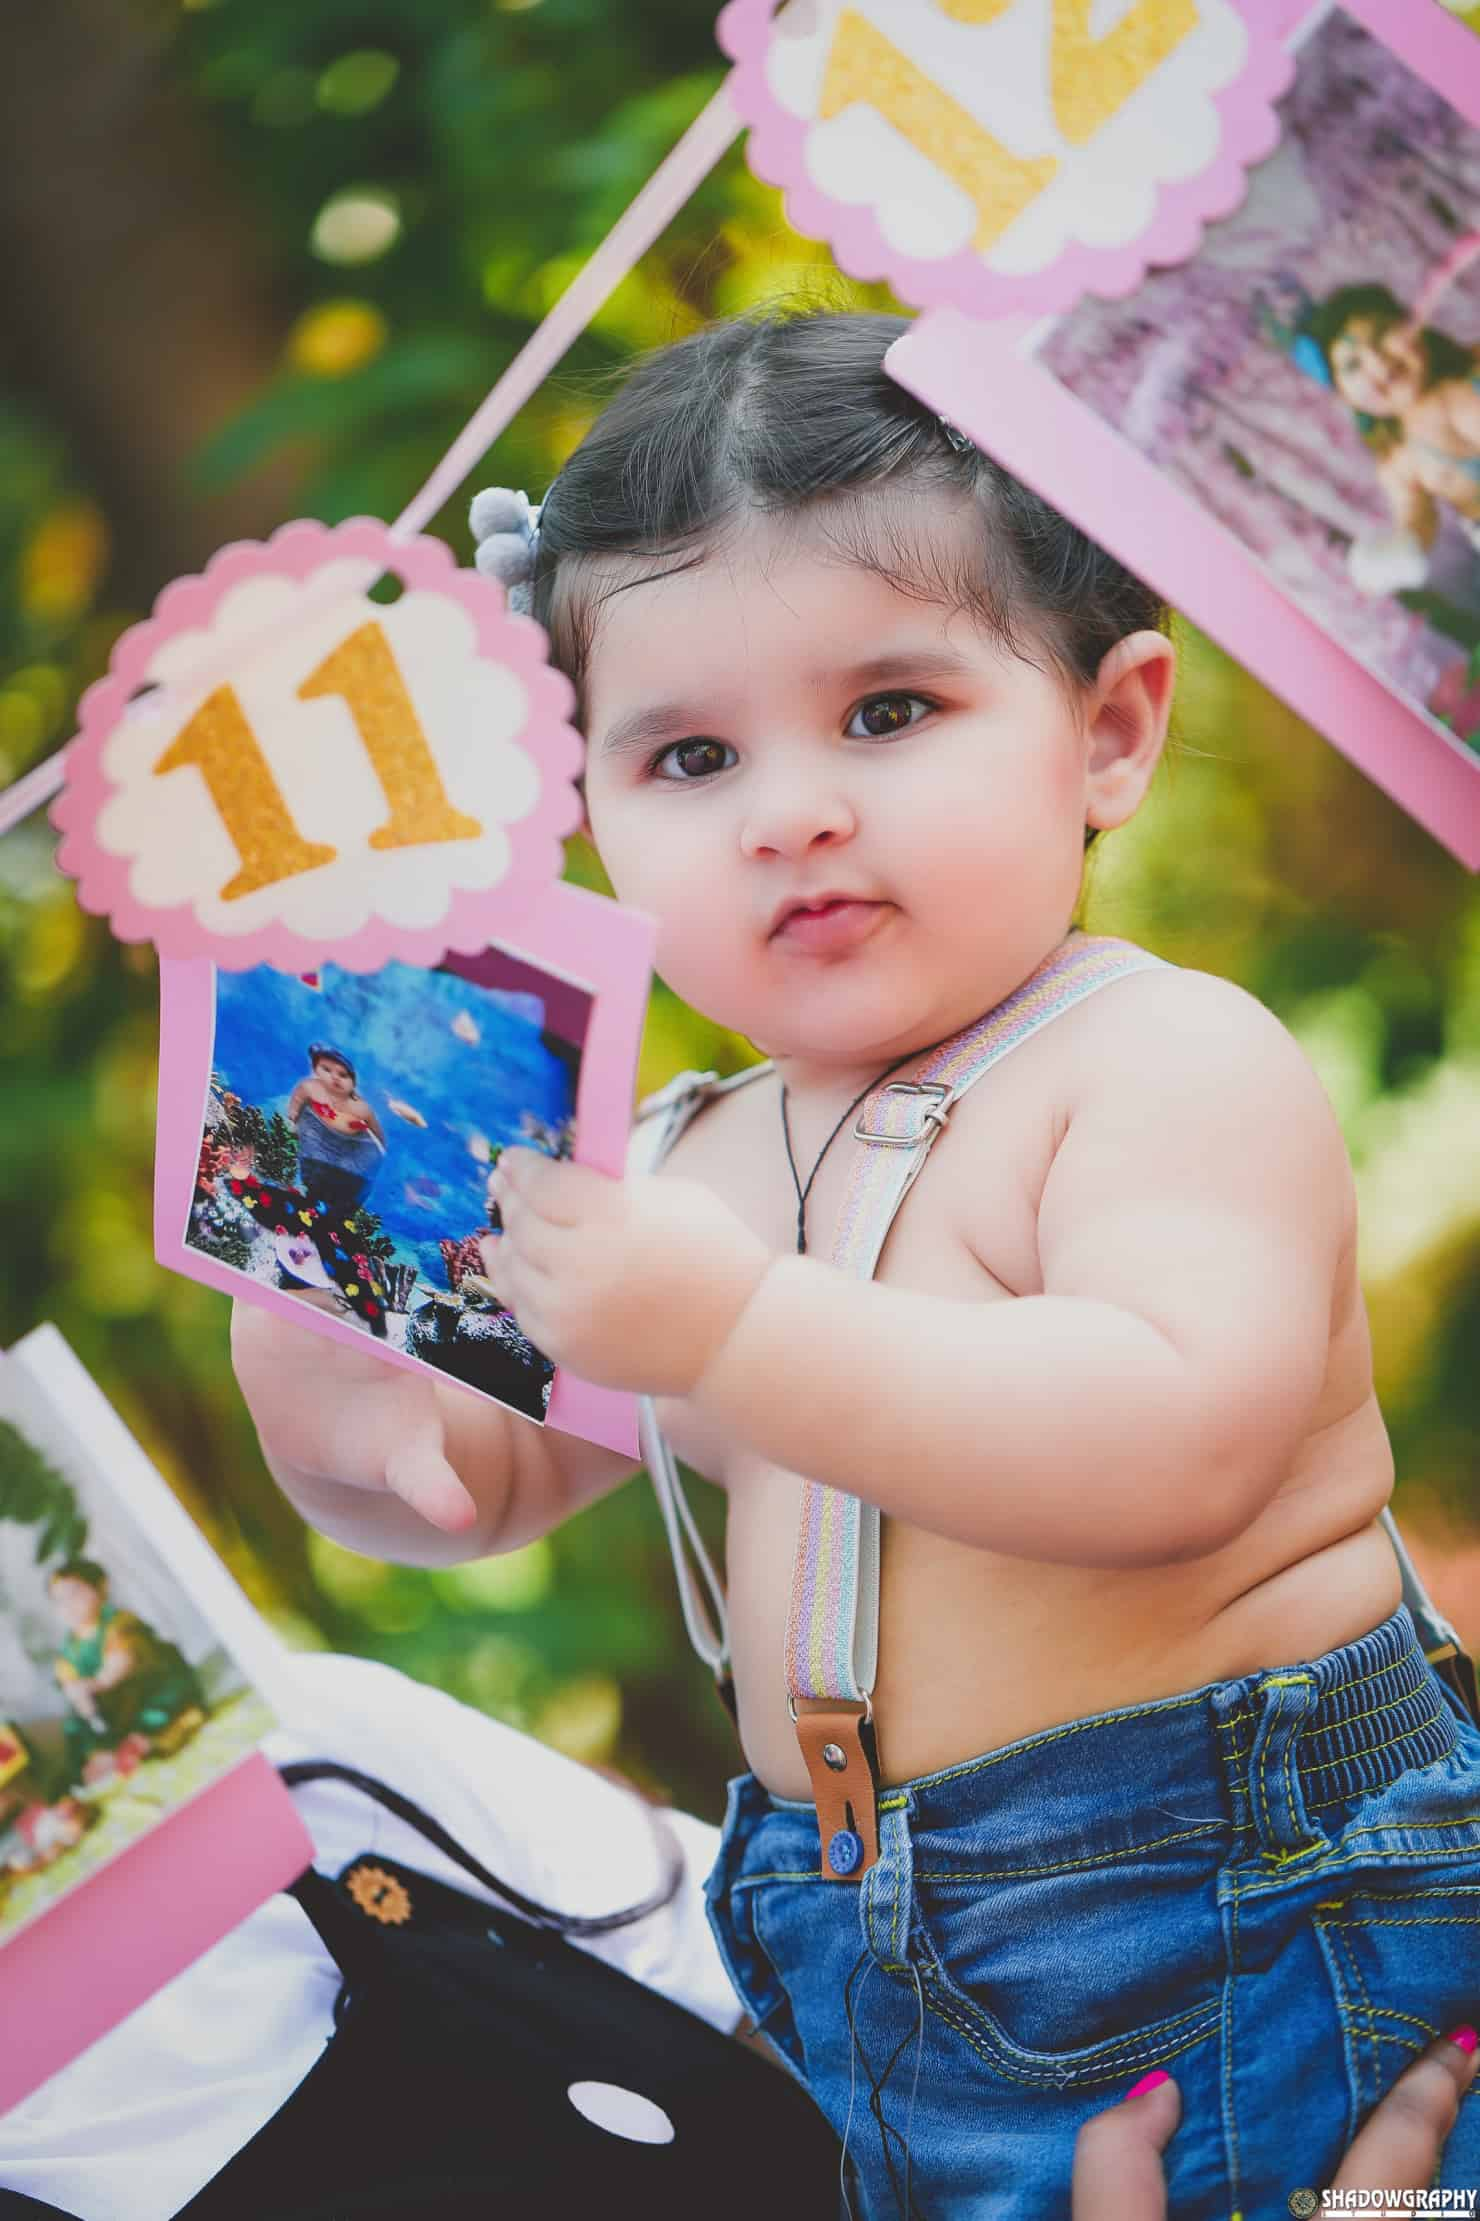 Baby Shoot Shadowgraphy Studio baby photographer in indore